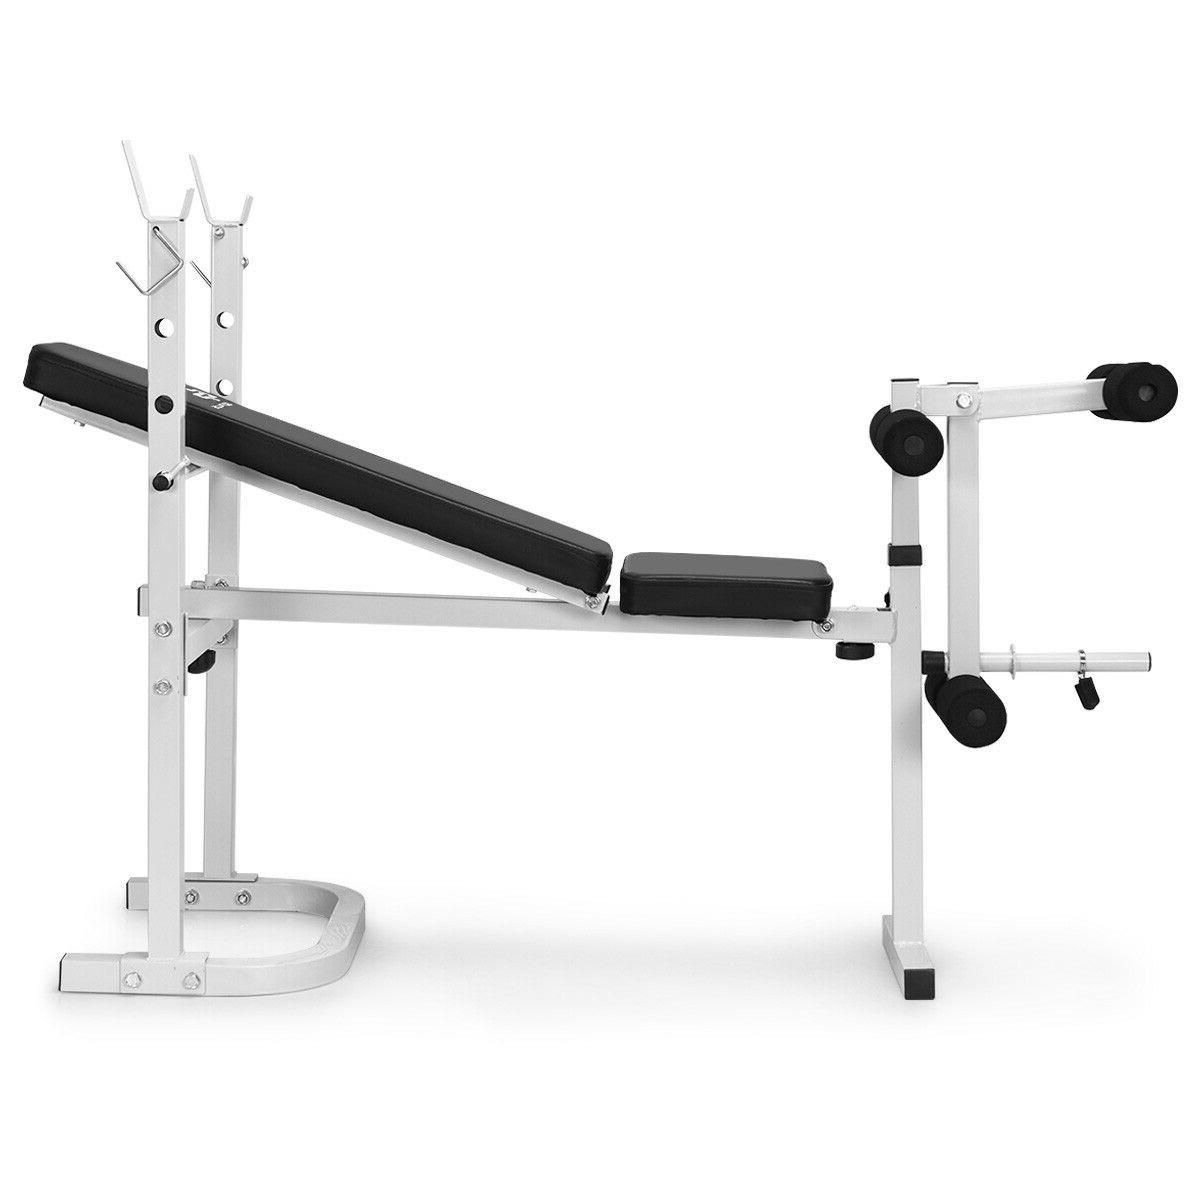 HIGH QUALITY Steel Olympic Folding Weight Bench With 3 Backrest